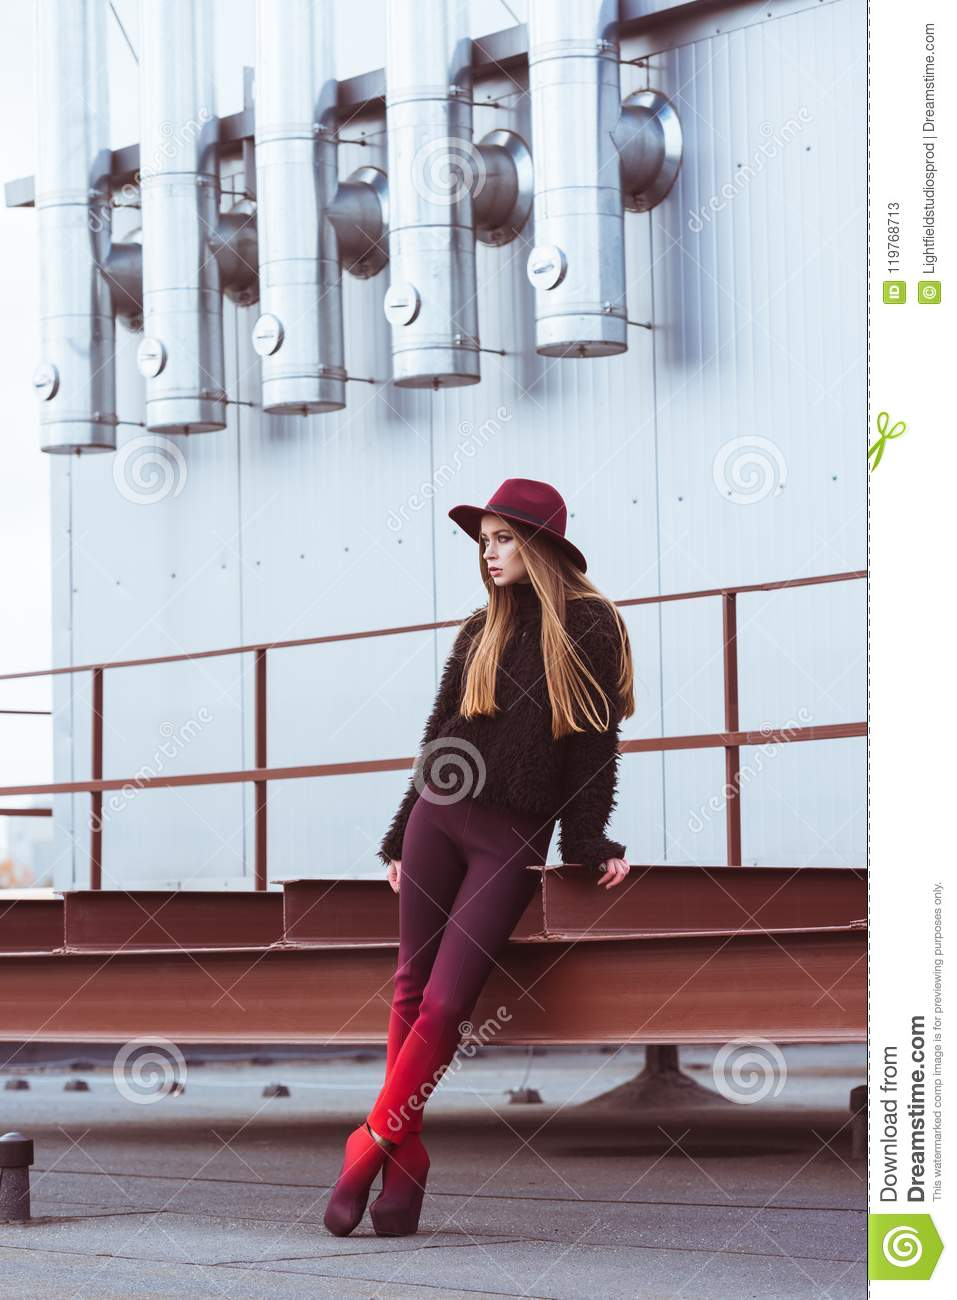 330c7e8069 Beautiful Woman In Burgundy Hat And Autumn Outfit Standing On A ...